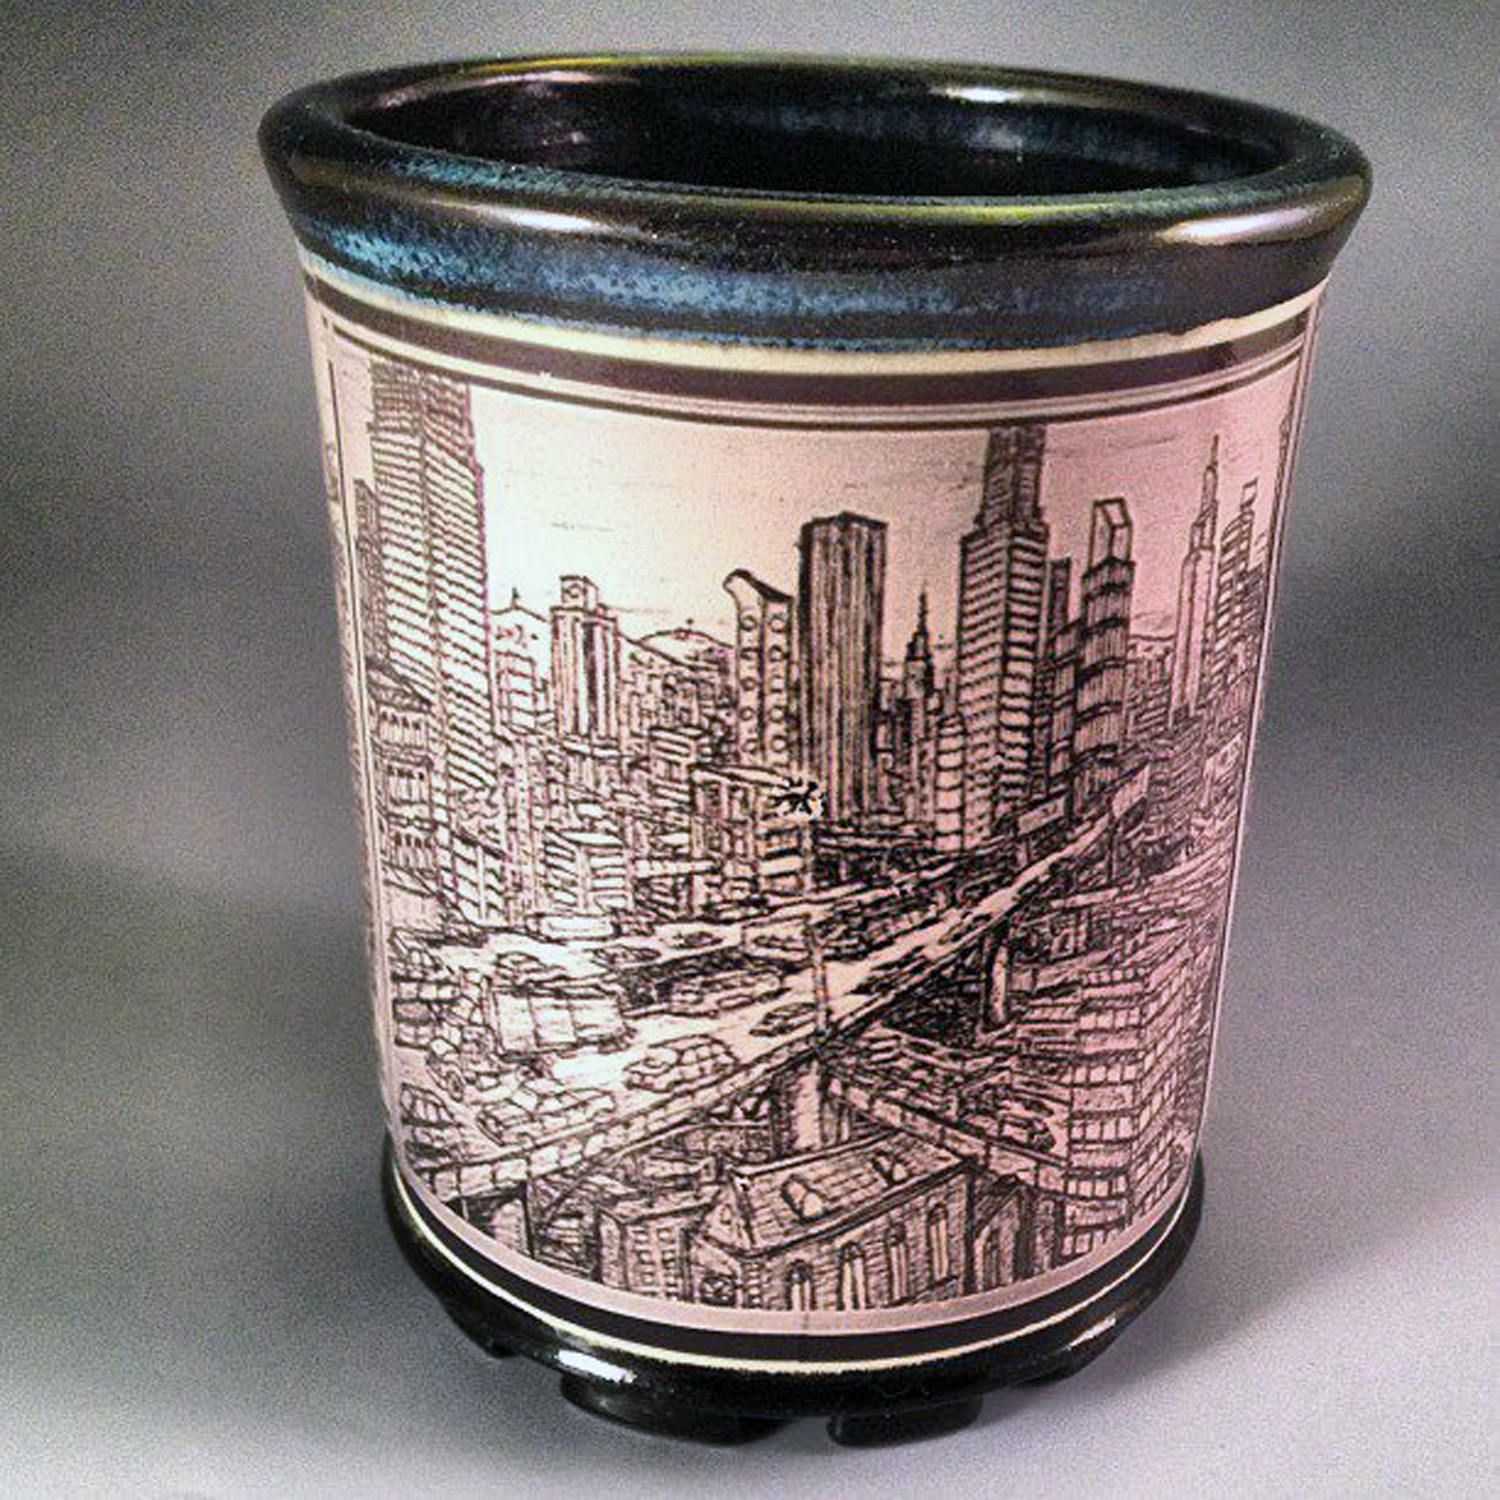 Ceramic decal tumbler